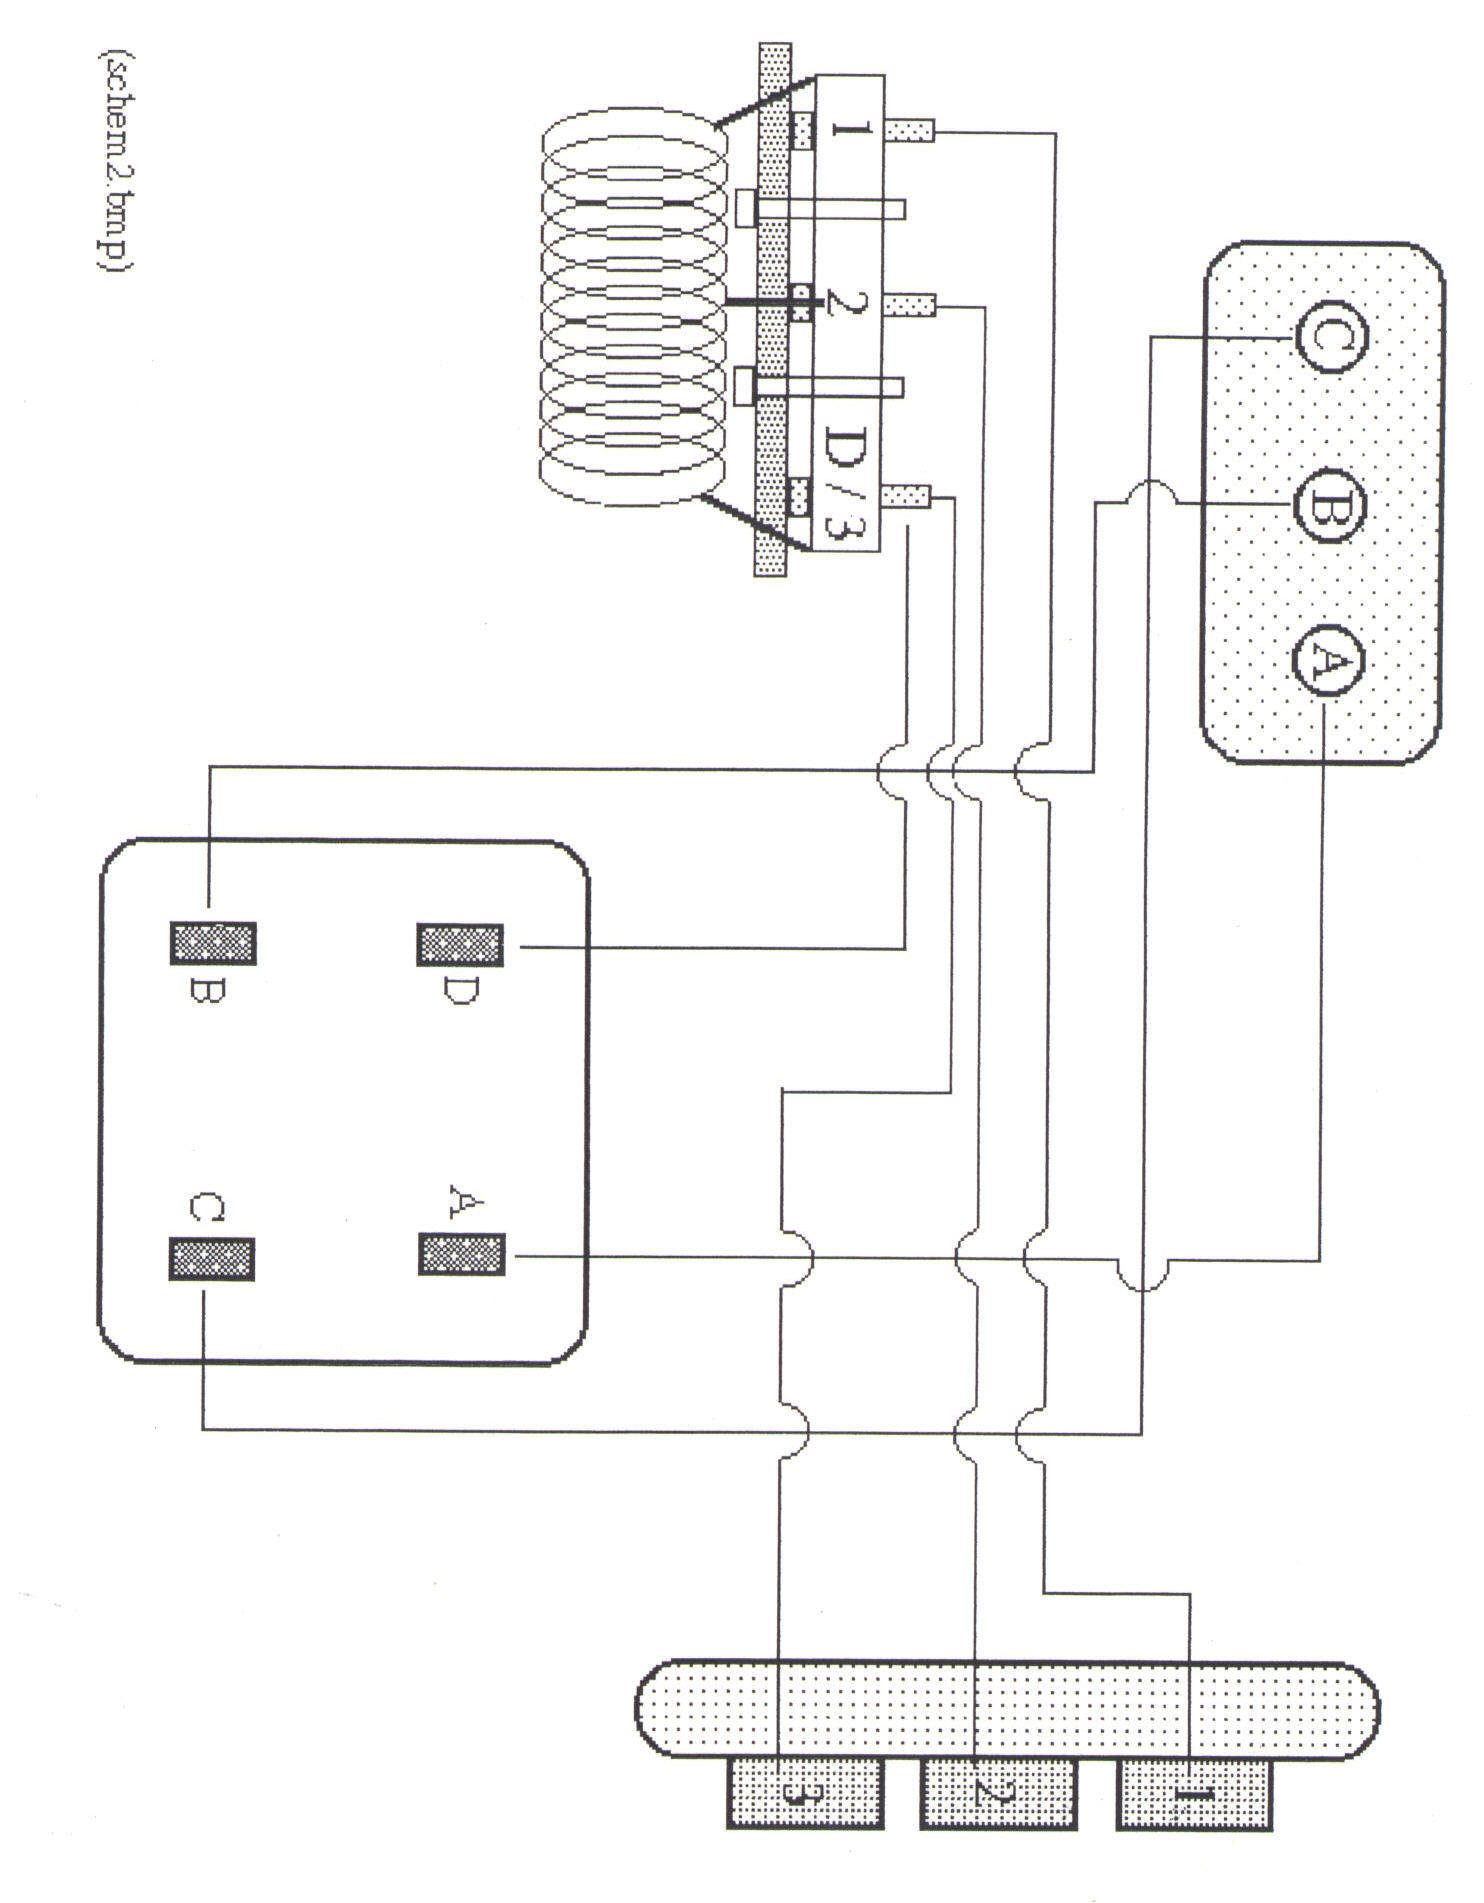 Golf Cart Wiring Diagram Additionally Ez Go Golf Cart Wiring Diagram